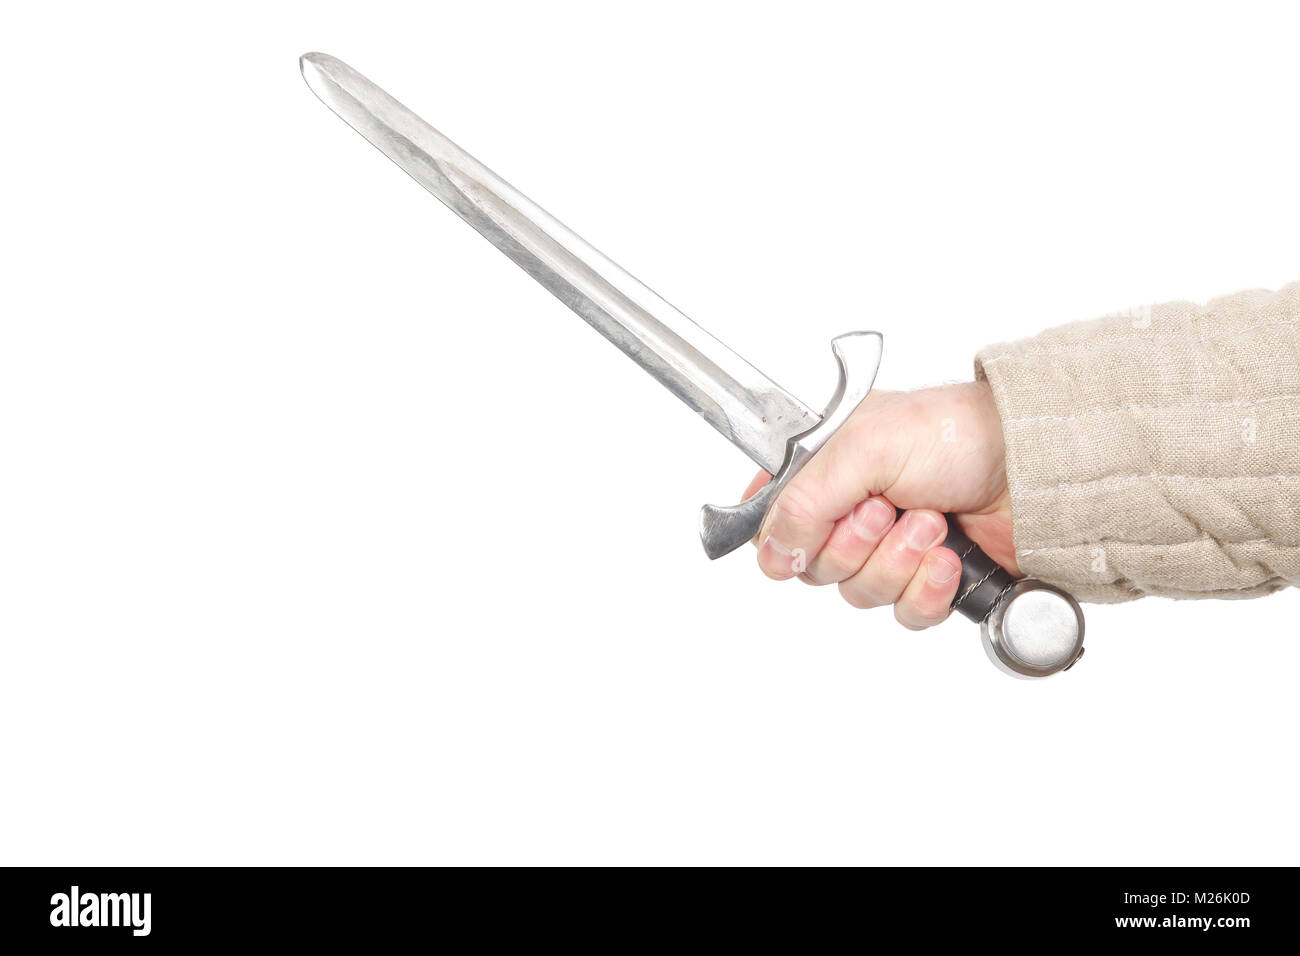 Medieval dagger in hand isolated on white - Stock Image